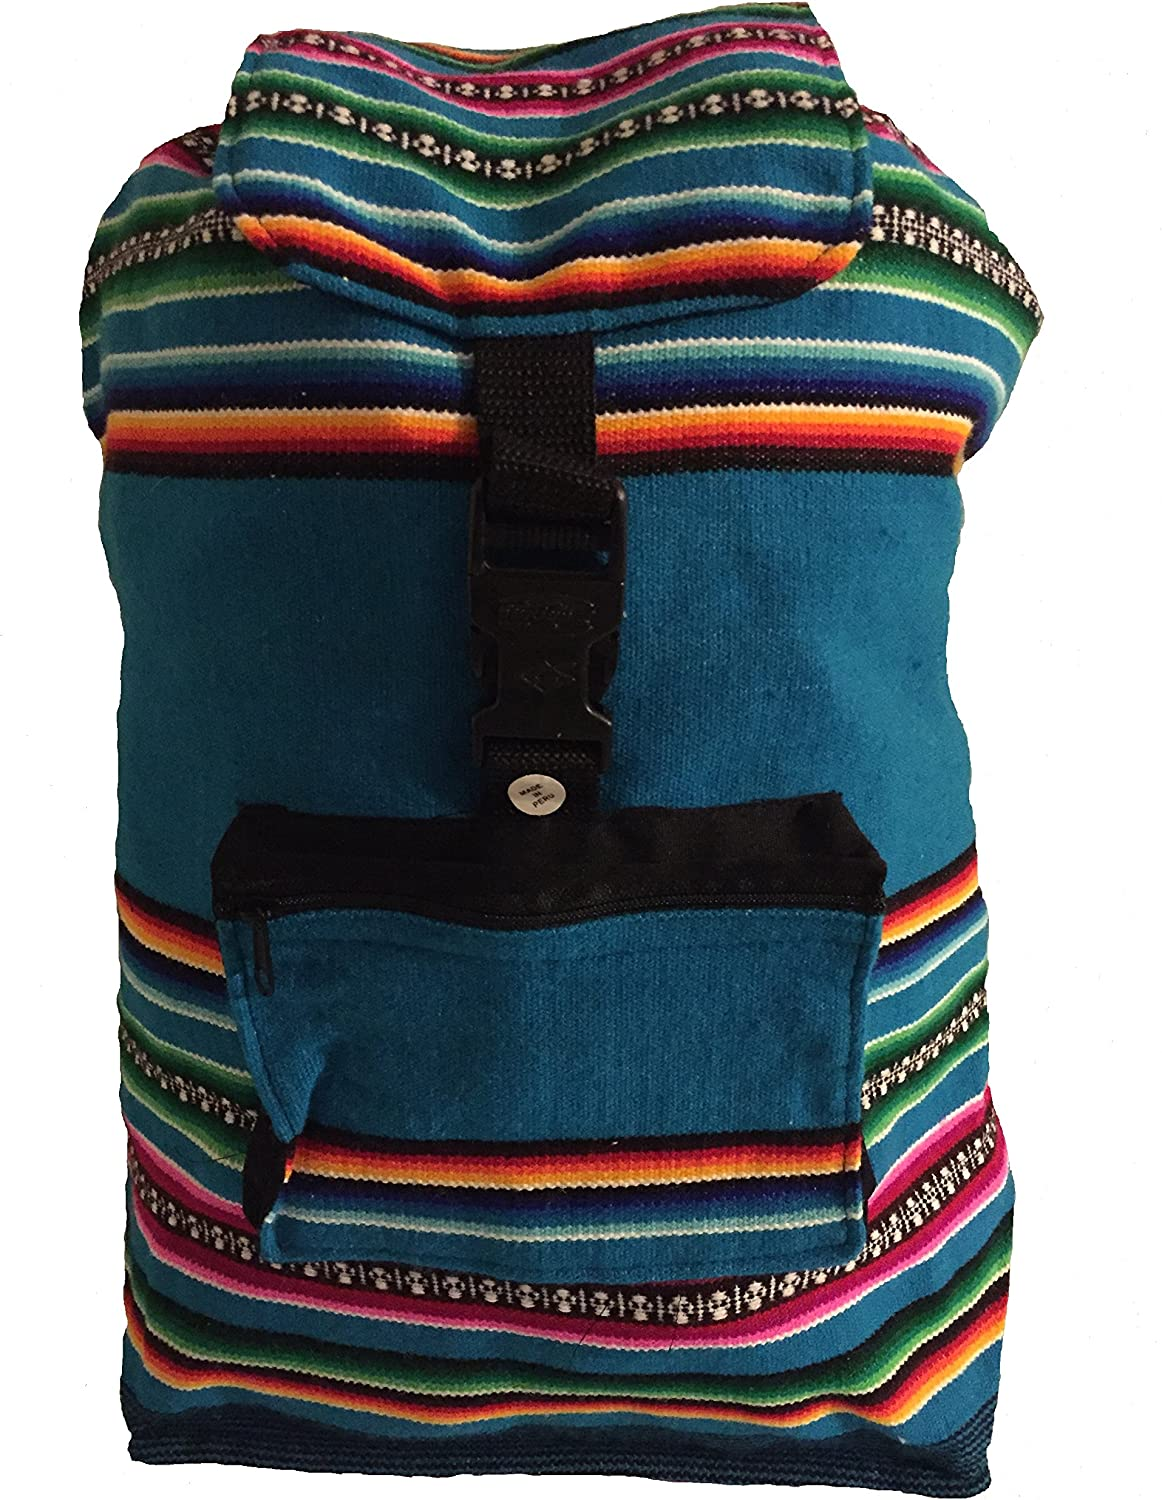 Beach Bag, Backpack-Teal Blue Rainbow